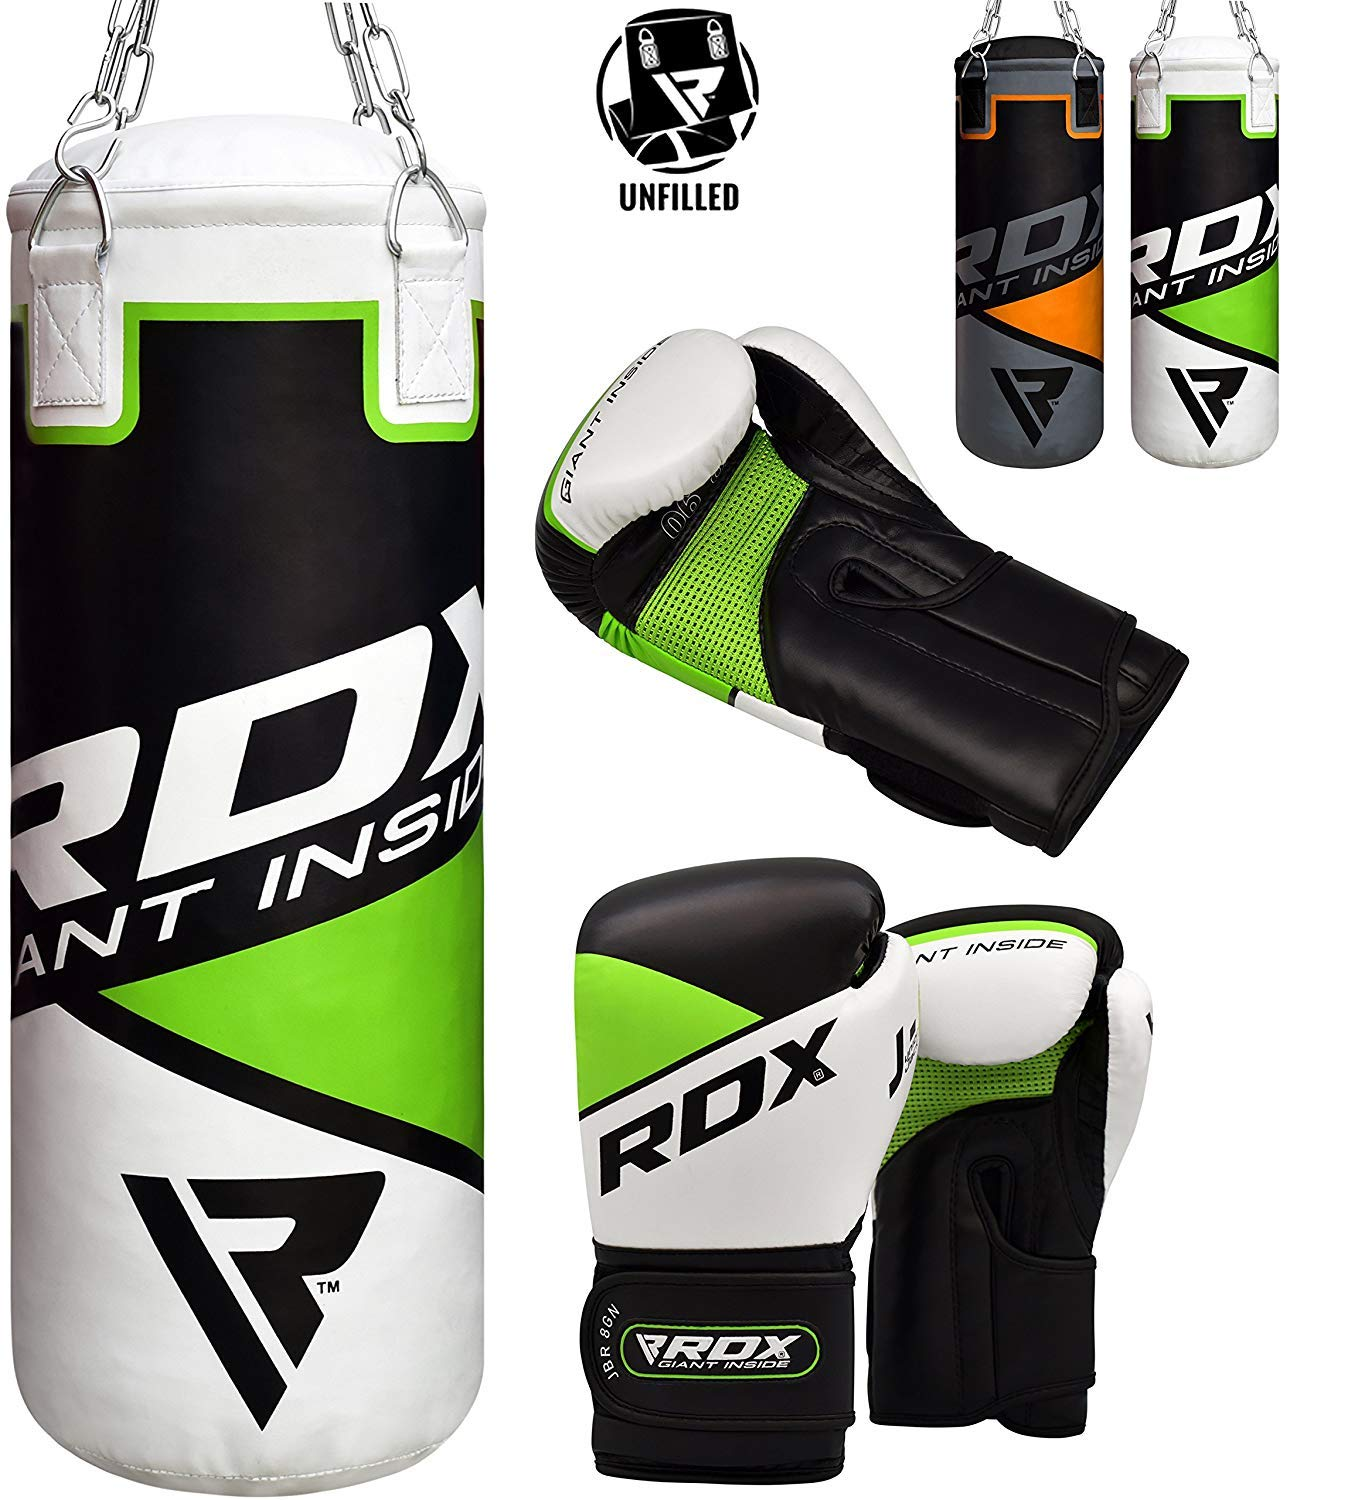 Top 9 Best Inflatable Punching Bags for Kids Reviews in 2019 9